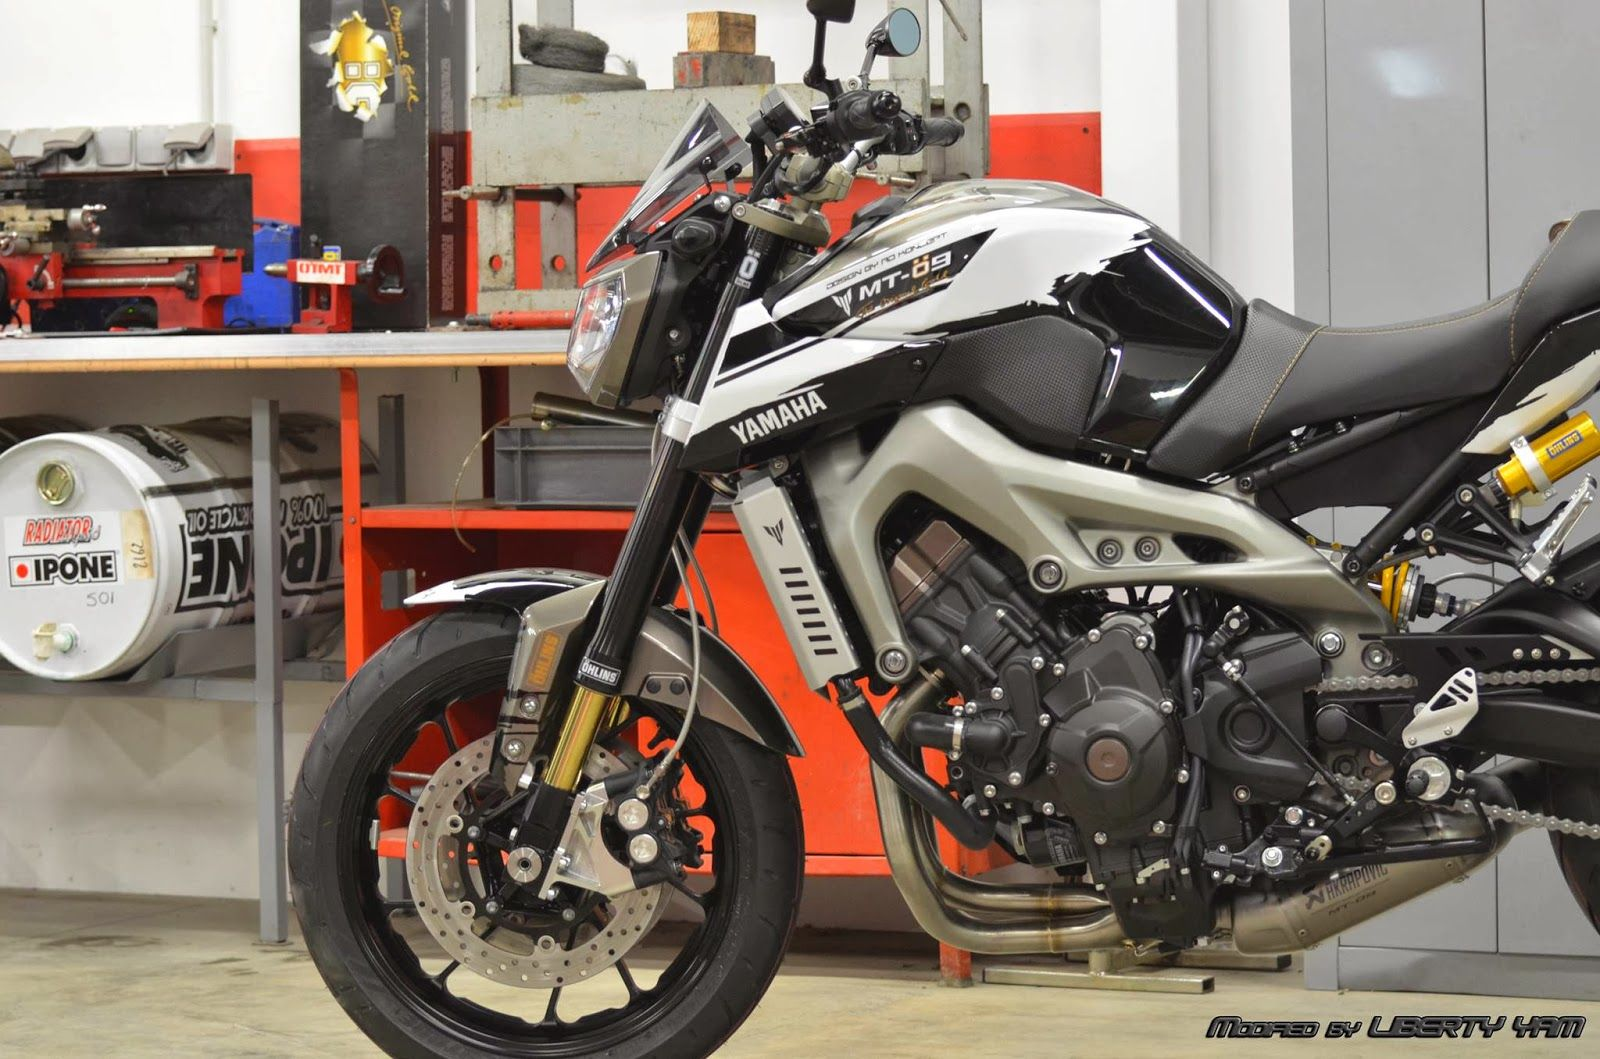 Racing caf yamaha mt 09 ohlins by liberty yam motorcycles pinterest scooter motorcycle yamaha r6 and scooters